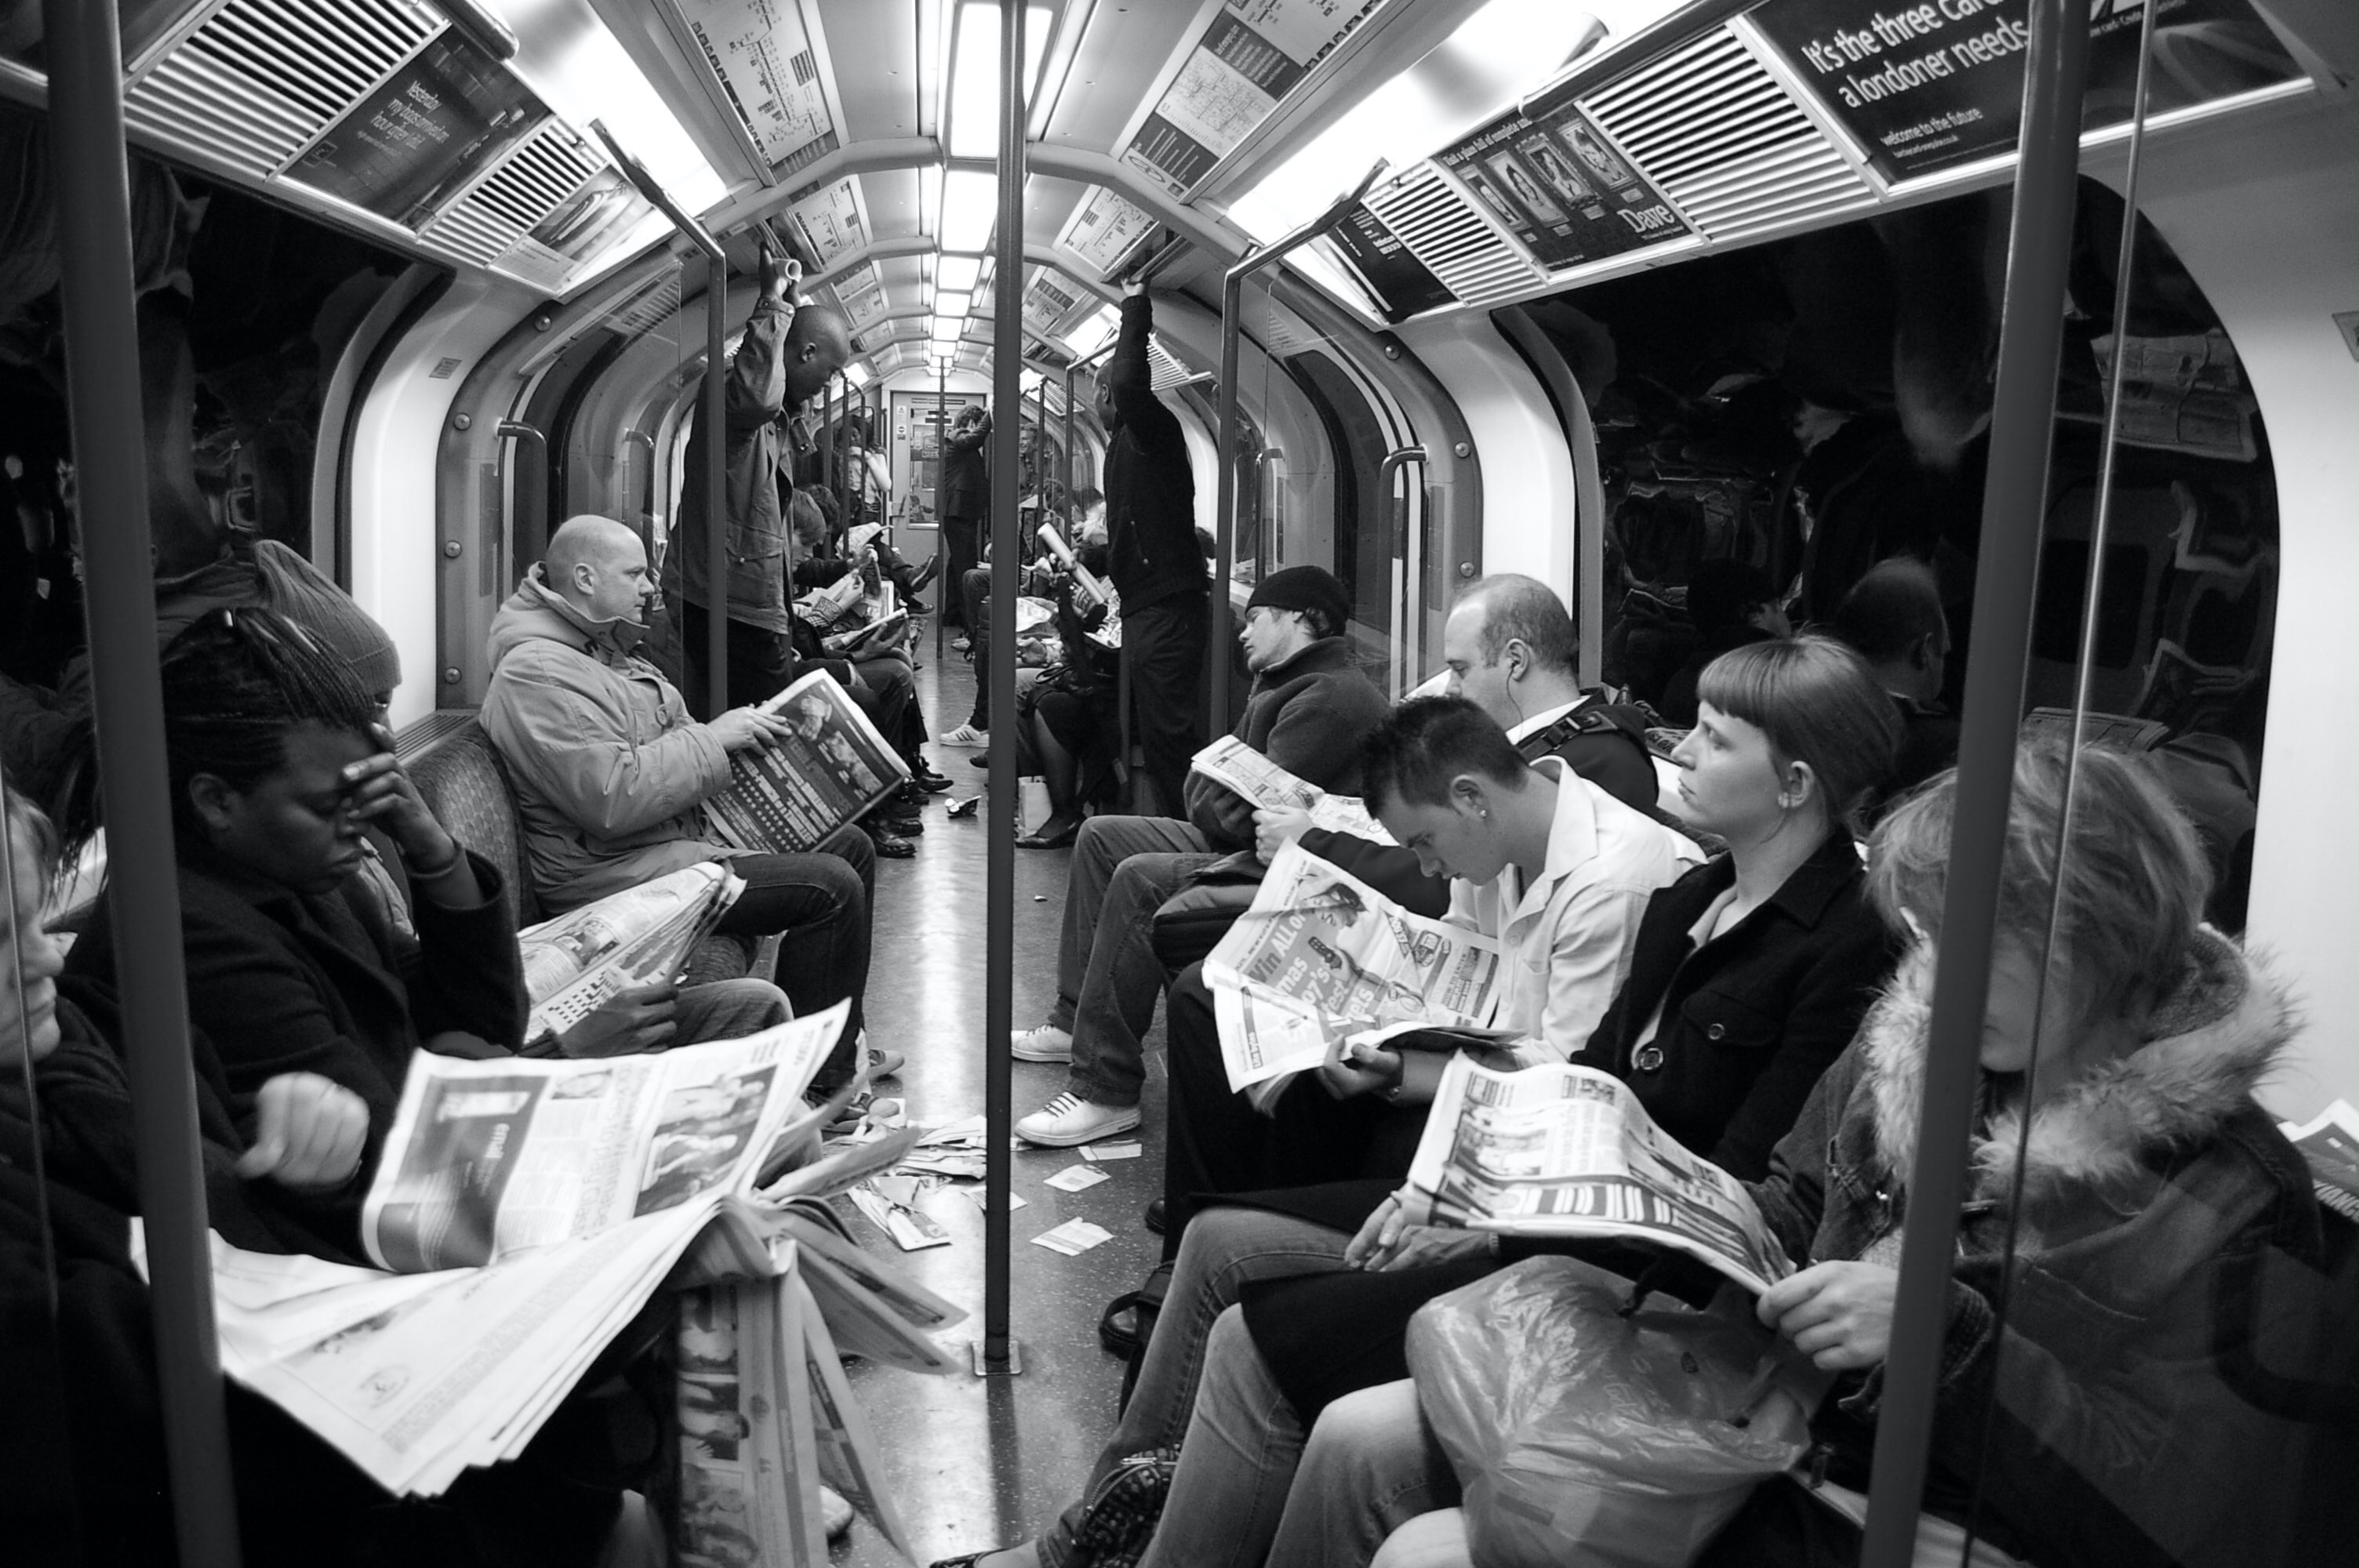 black & white photo of people reading newspapers on a train